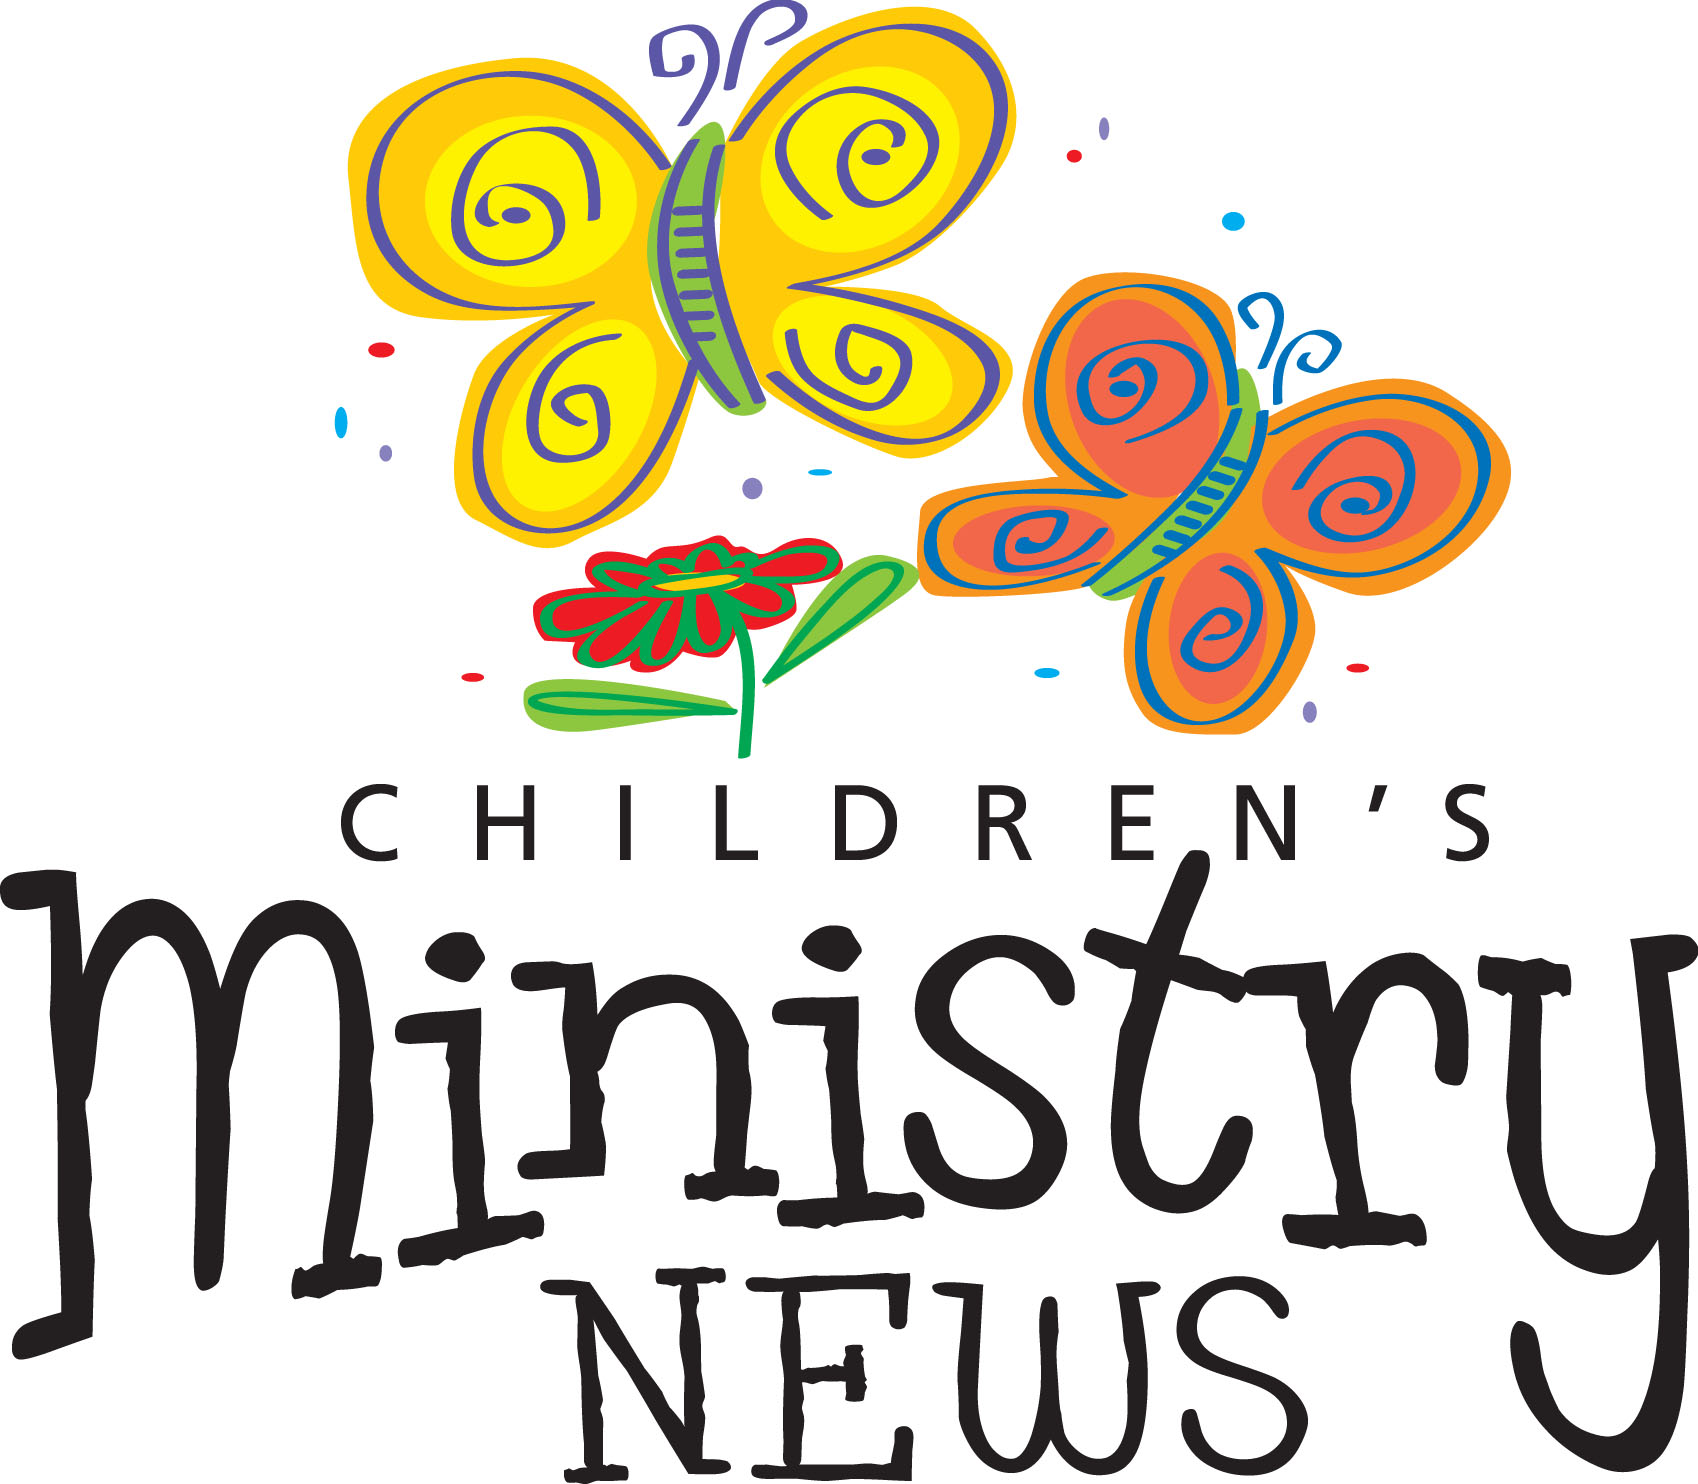 Children's Ministries NEWSLETTER « The Woodlands Community.